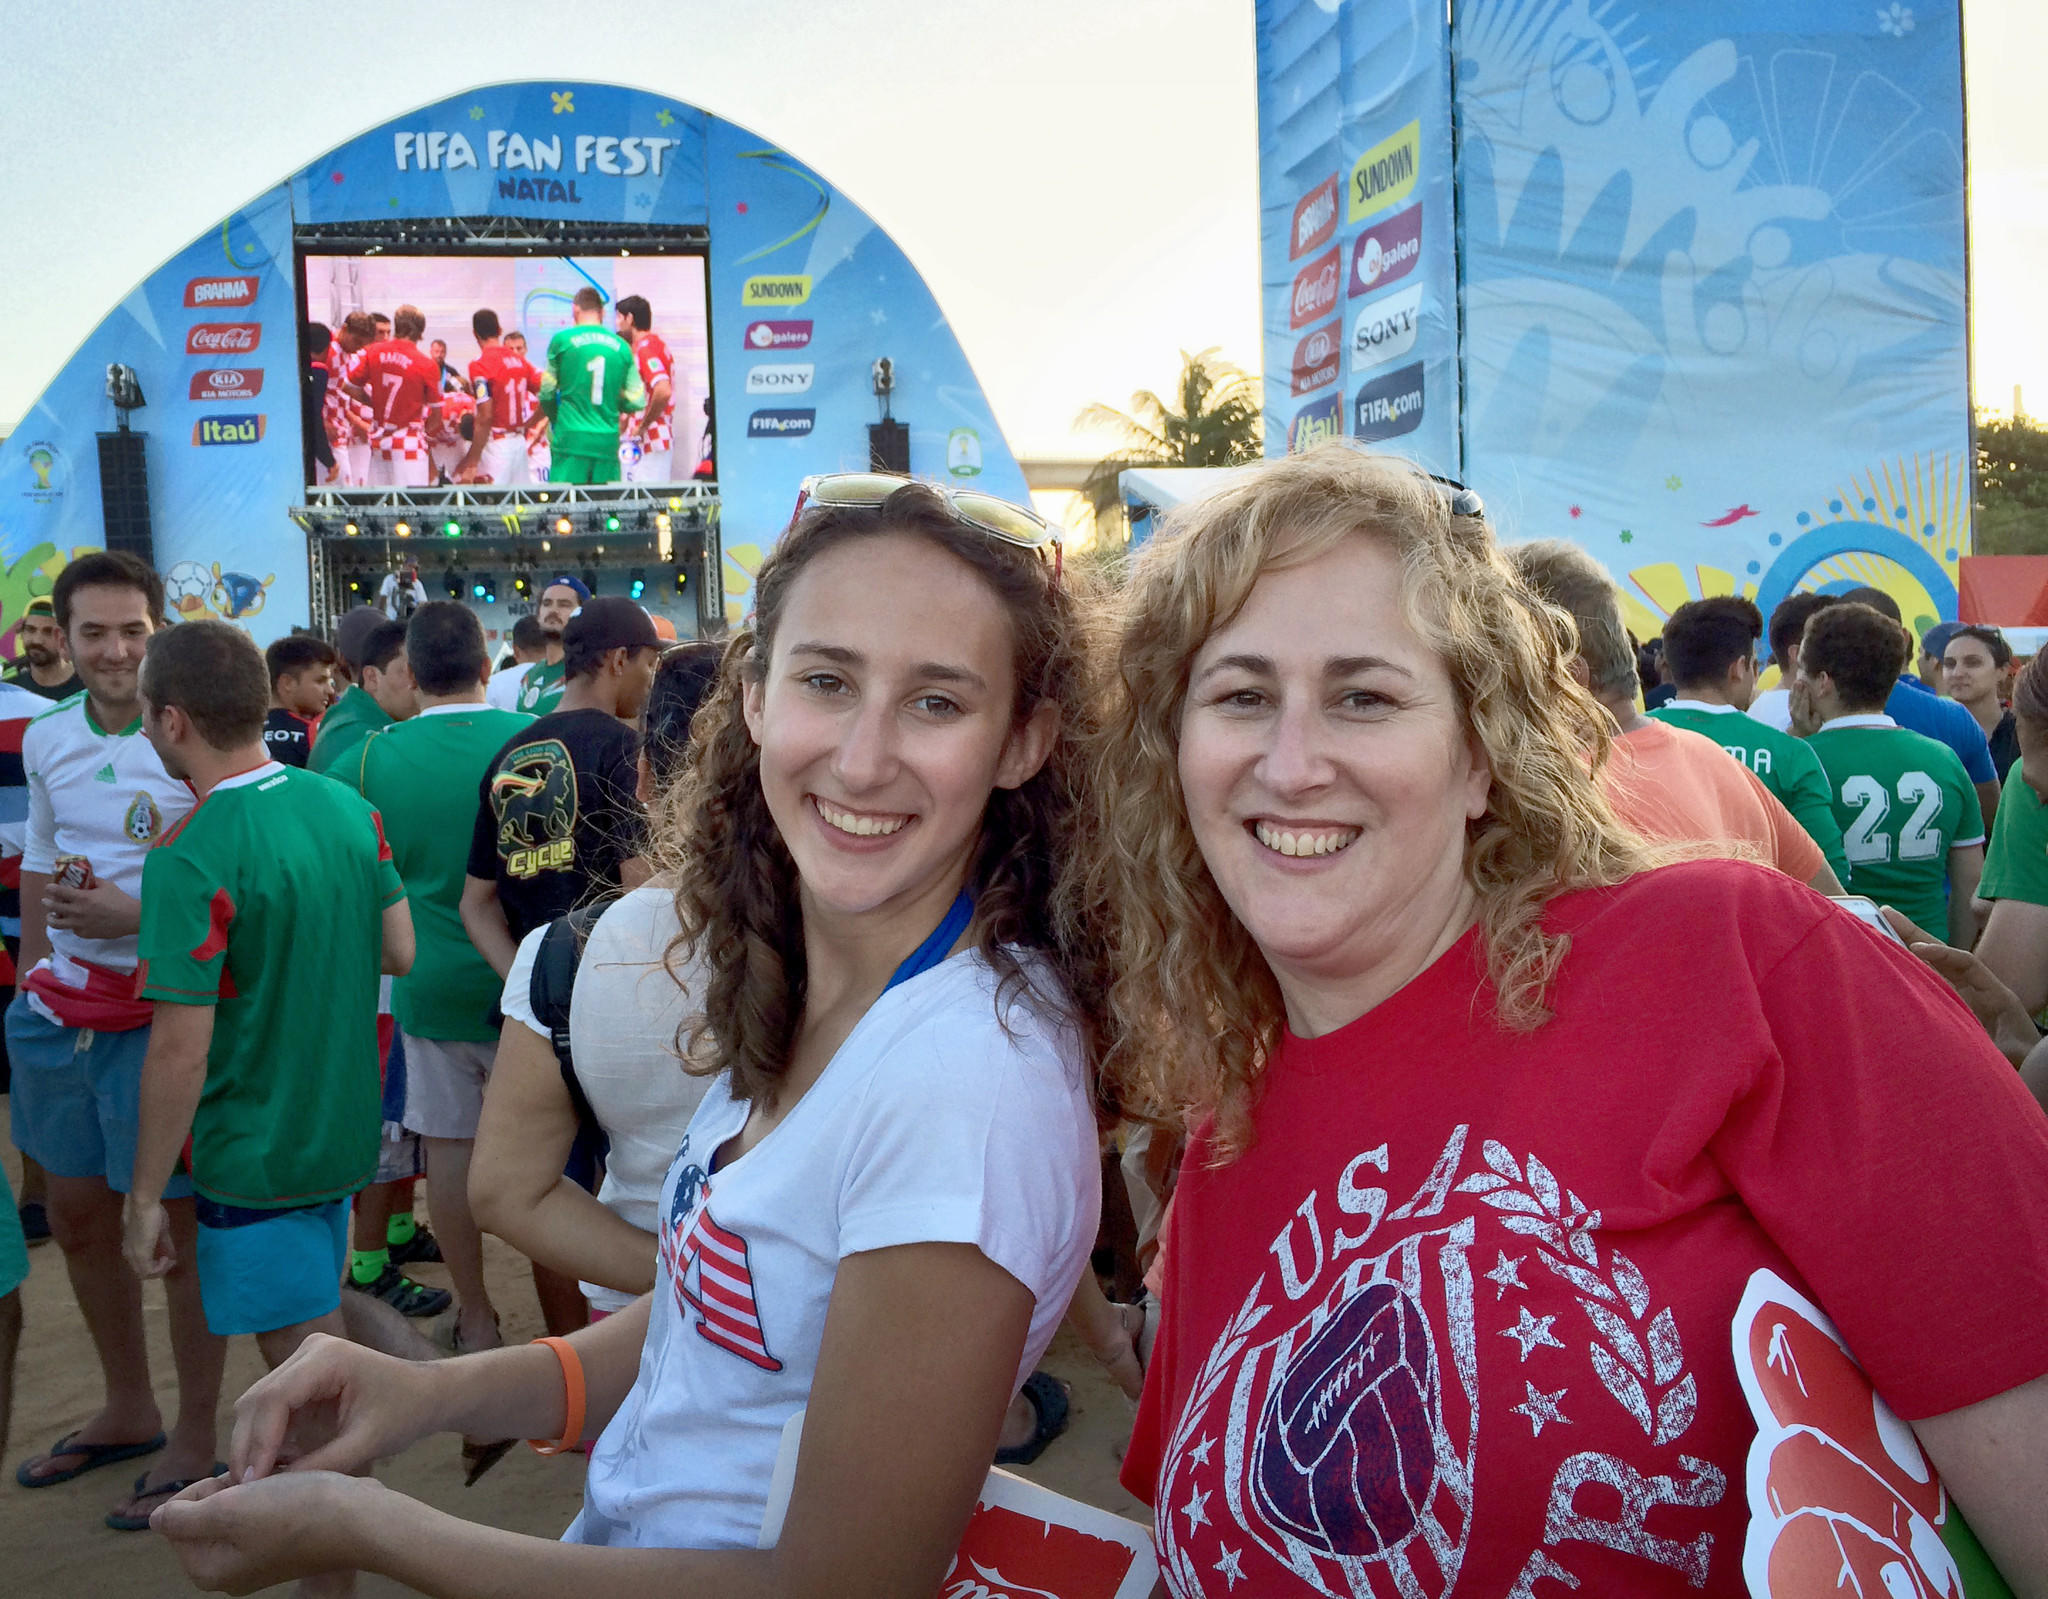 Hannah Smith and her mother, Rori, take in World Cup festivities in Brazil.